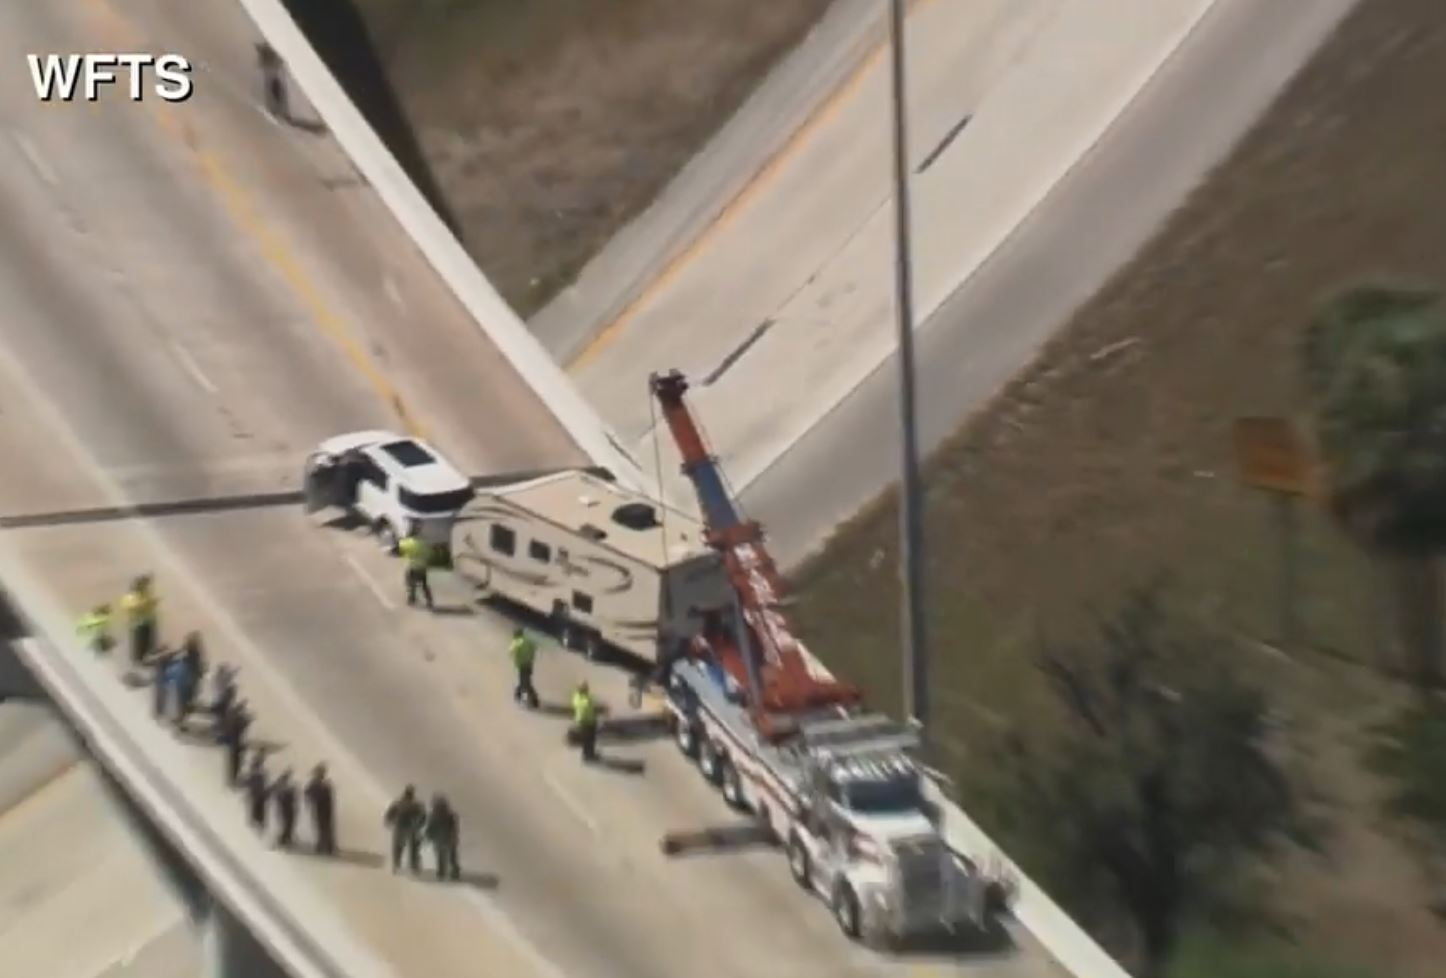 Camper dangles from Florida overpass. (WFTS via CNN Newsource)